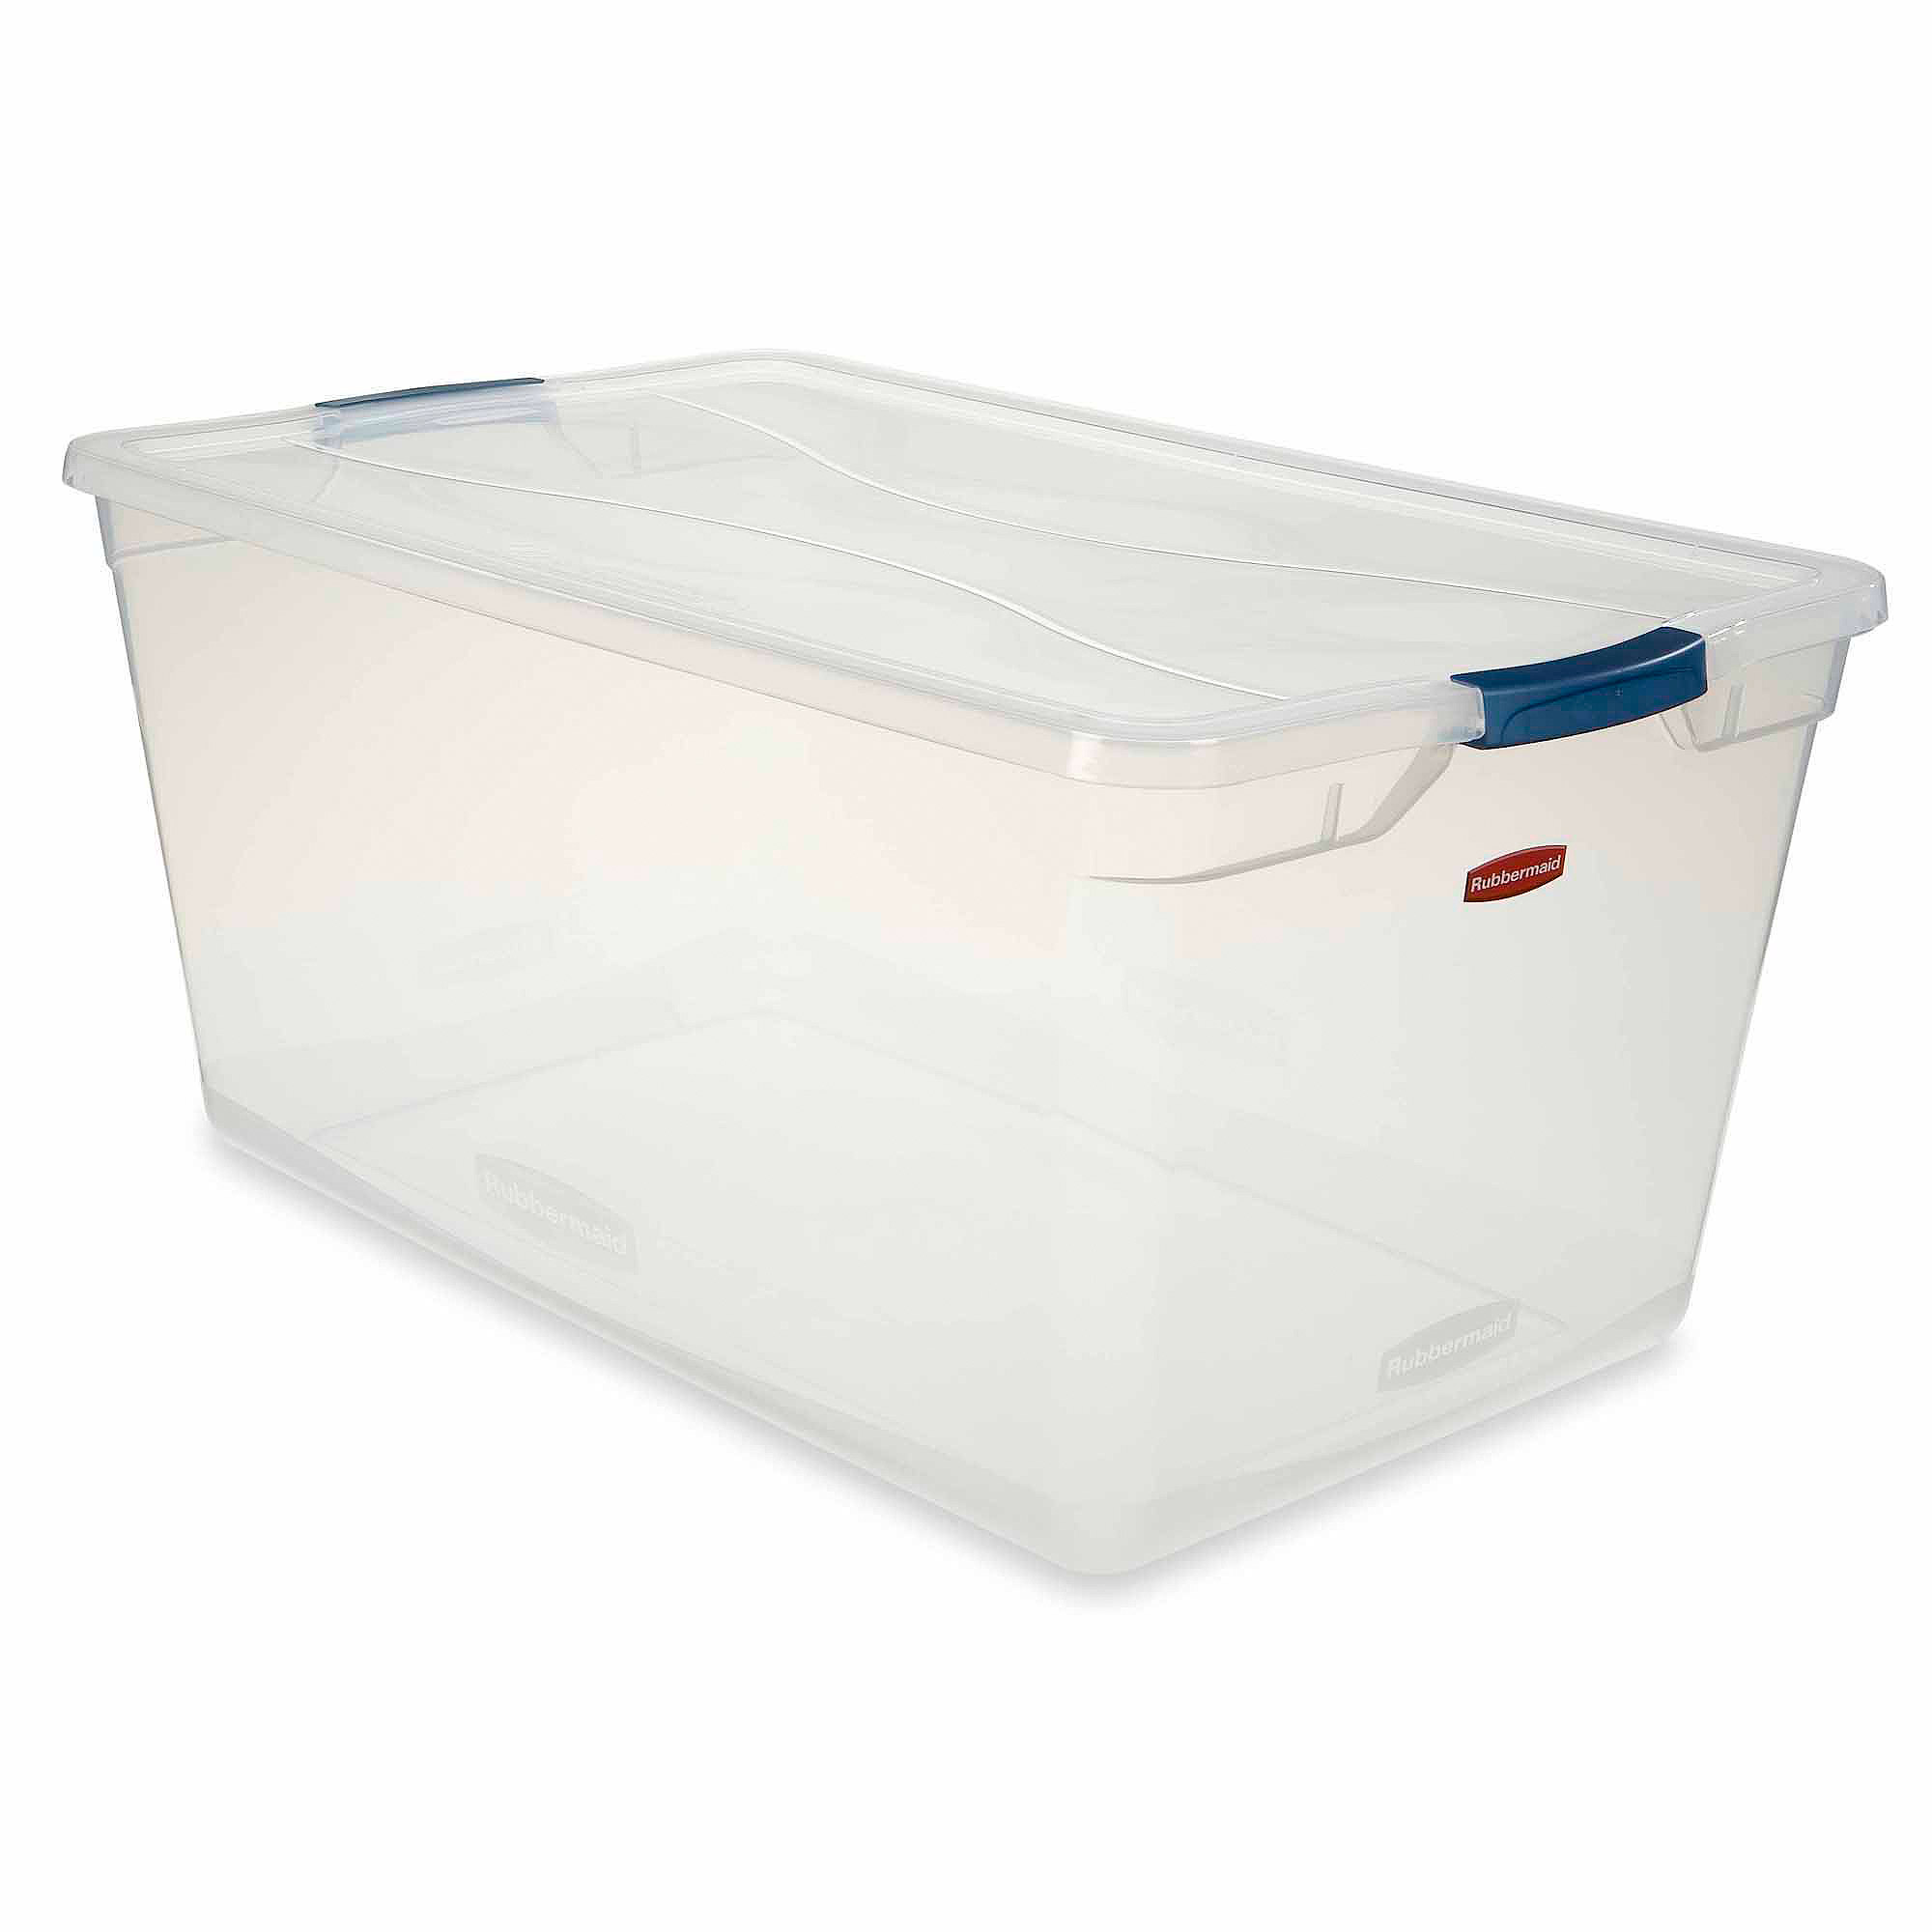 Rubbermaid Clever Store Clears Standard Latch Storage Container, 95 Qt,  Clear   Walmart.com